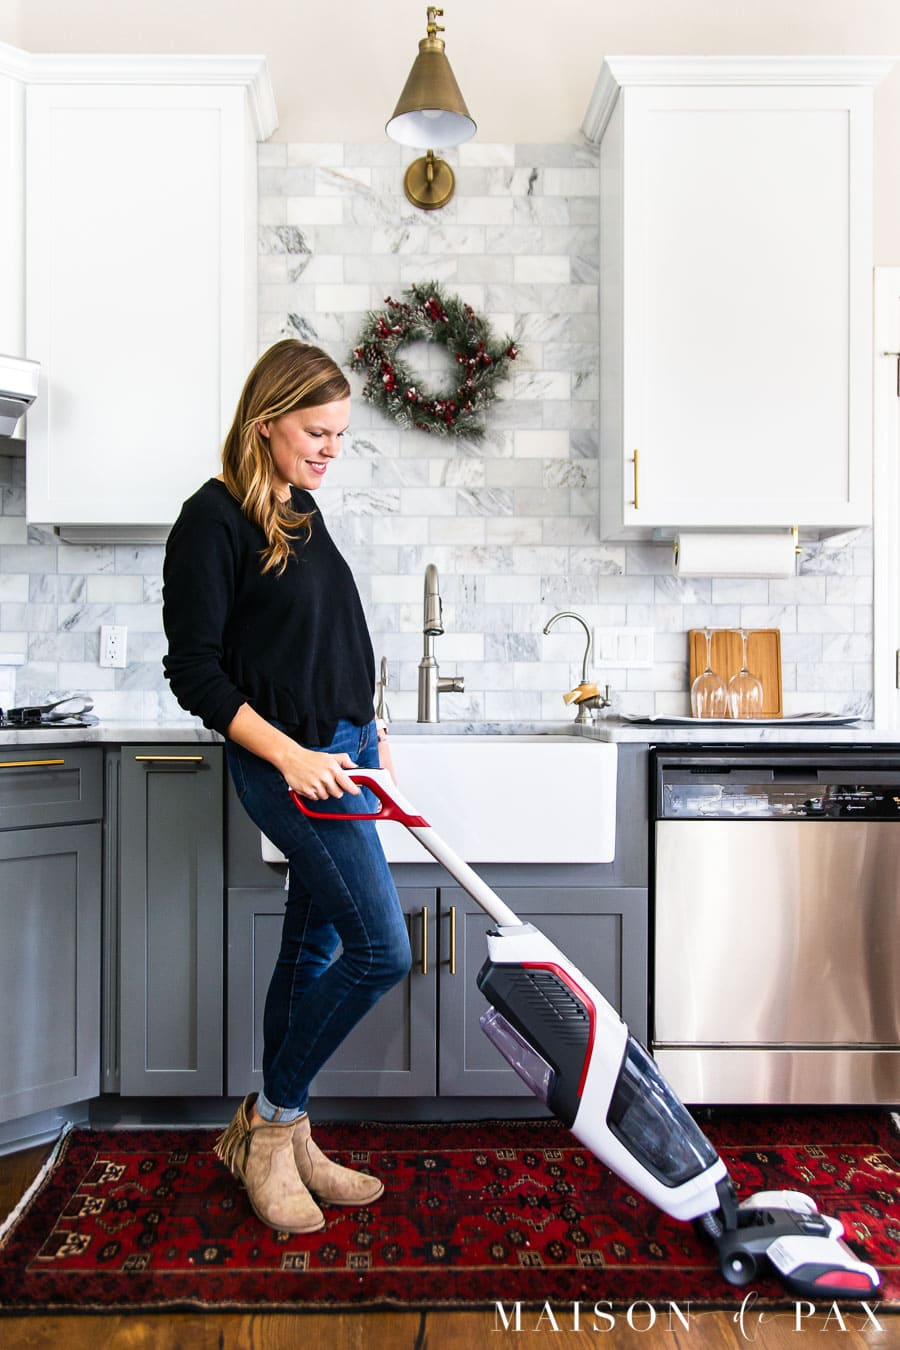 Cleaning Hacks To Get Your Home Holiday Ready Maison De Pax